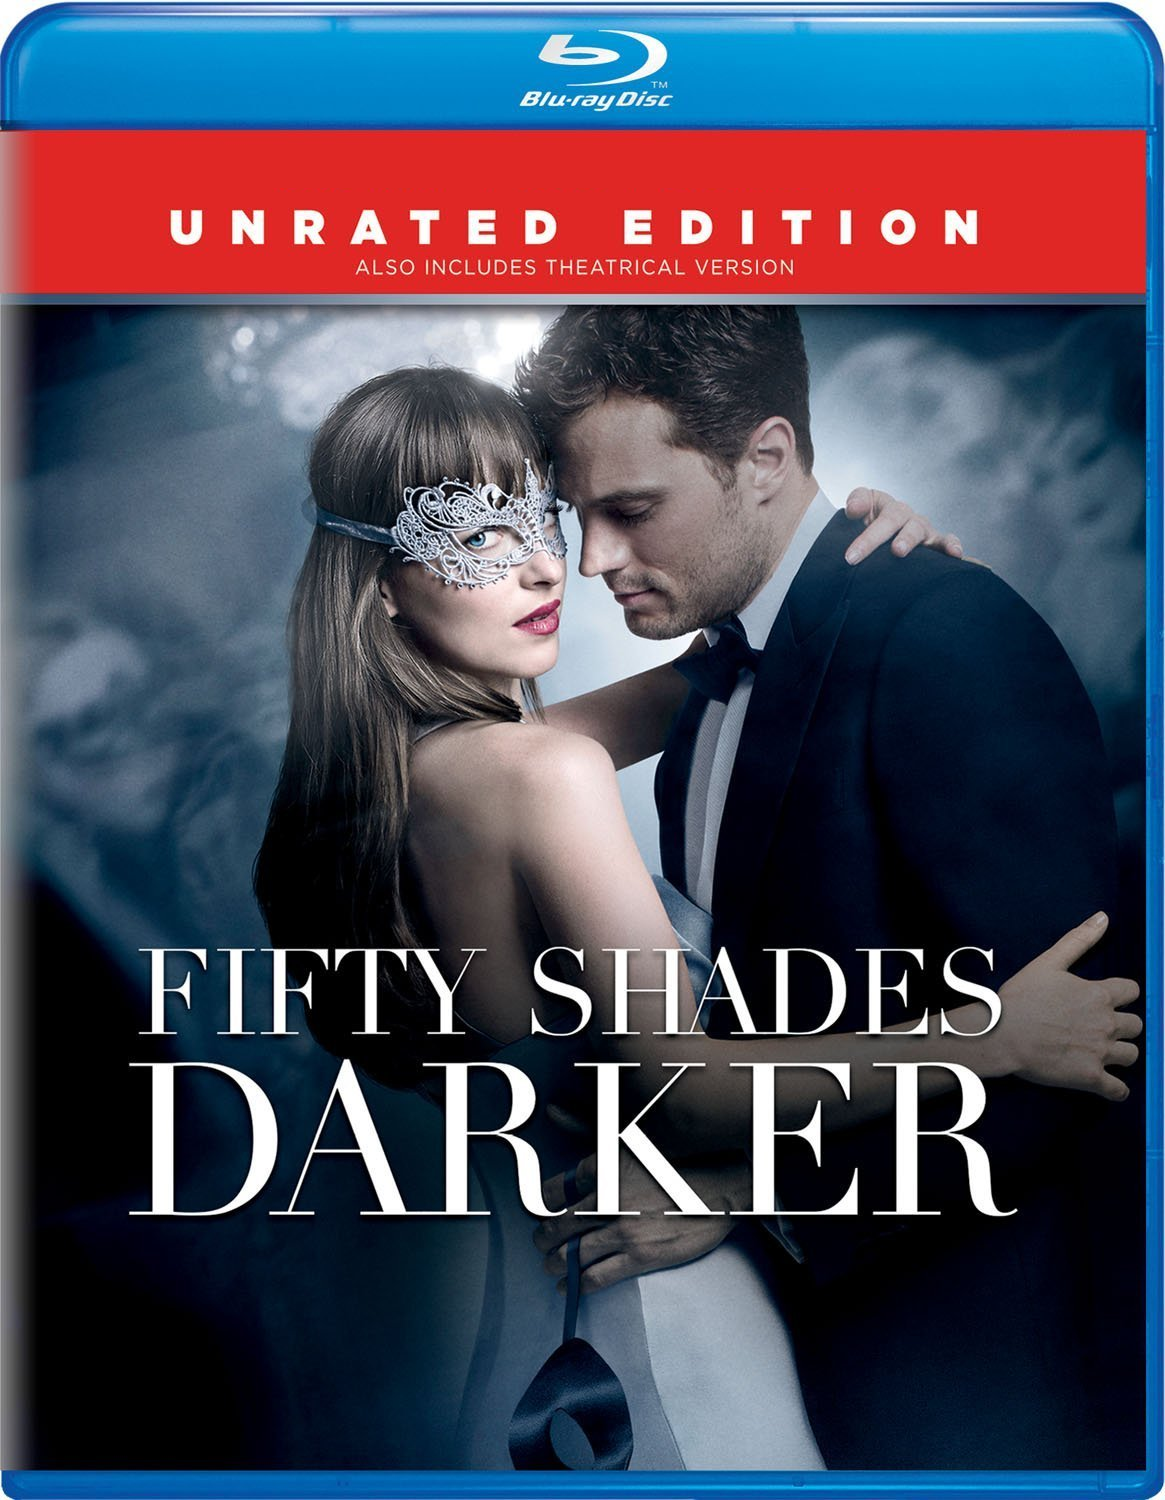 Fifty Shades Darker - Unrated Edition (2017, Blu-ray + DVD)